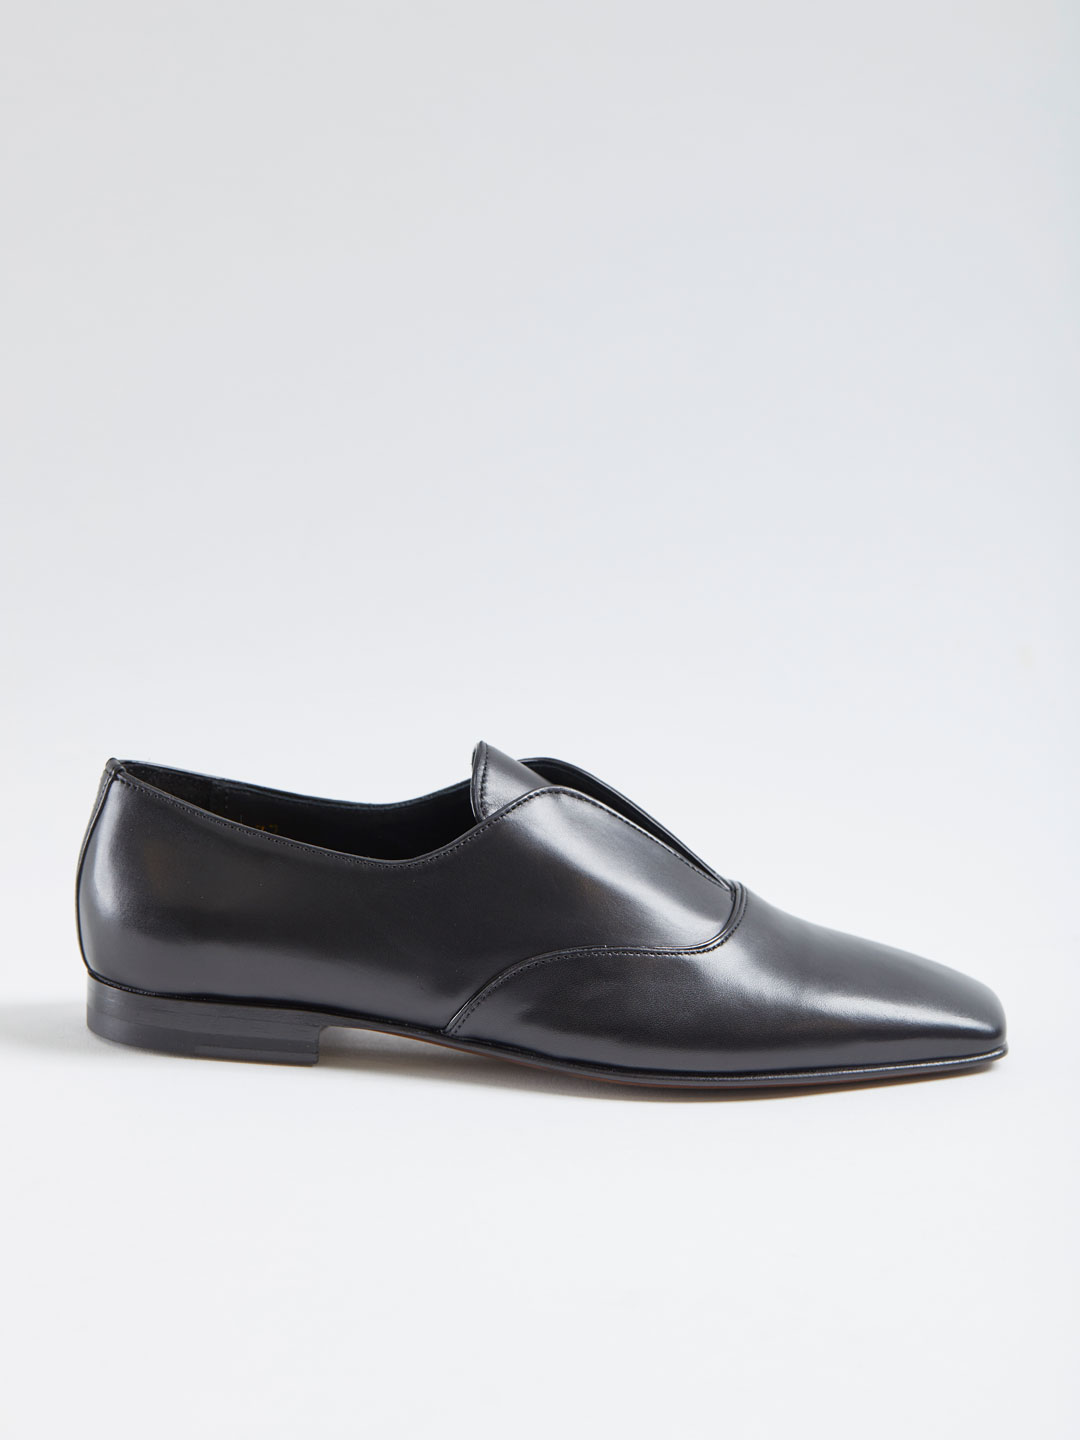 Corsair Leather Flat Shoes - Black